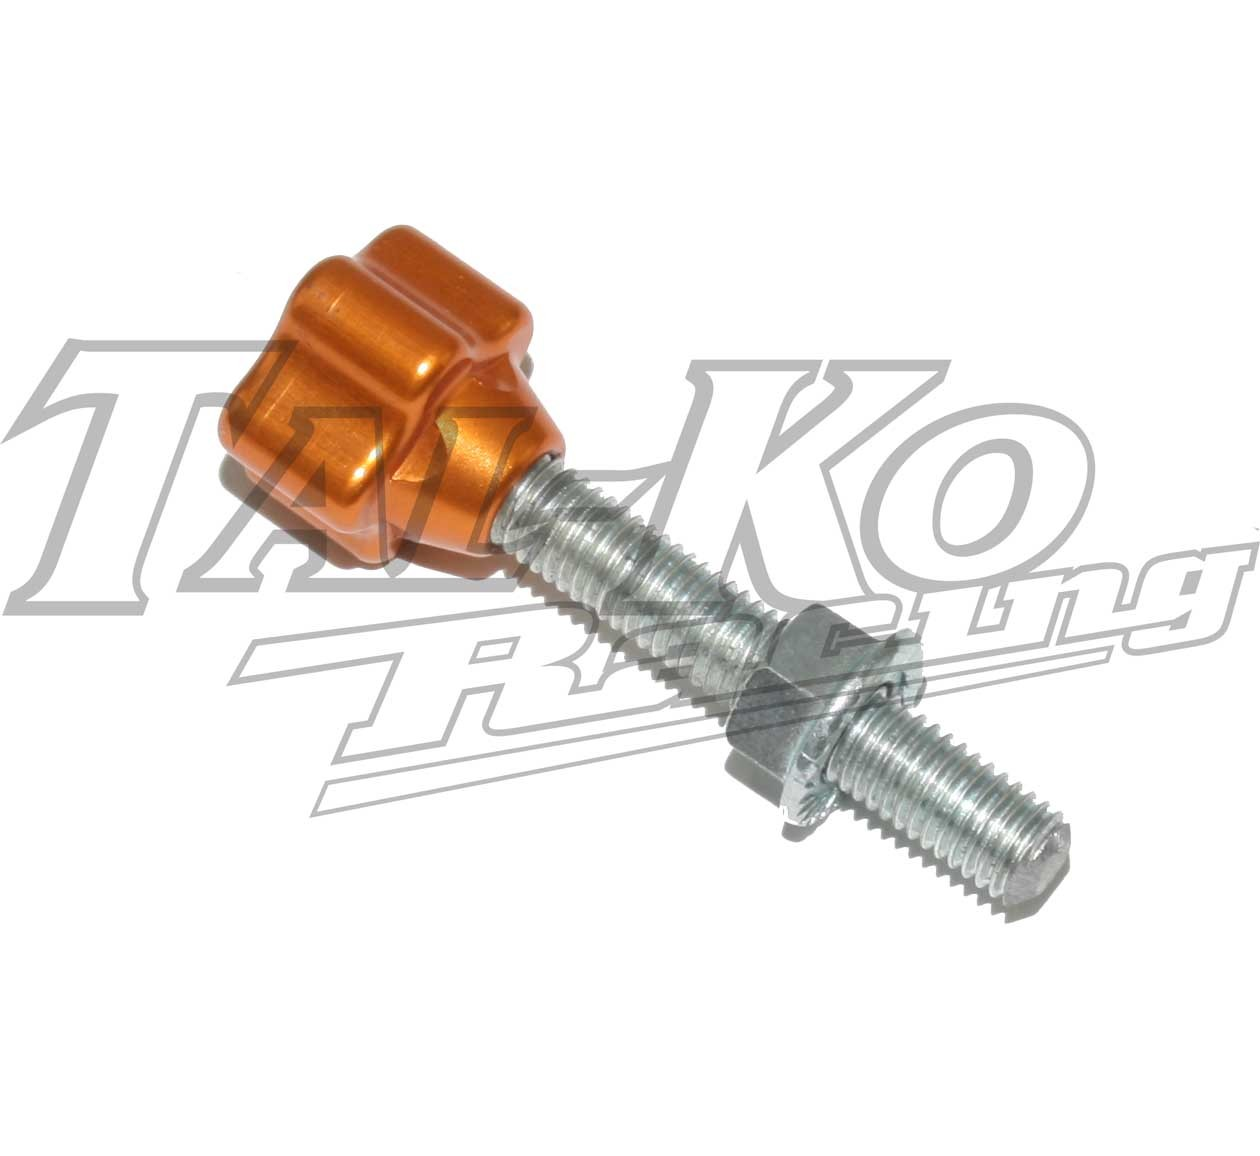 WK ENGINE MOUNT ADJUSTER BOLT M10 x 82 GOLD